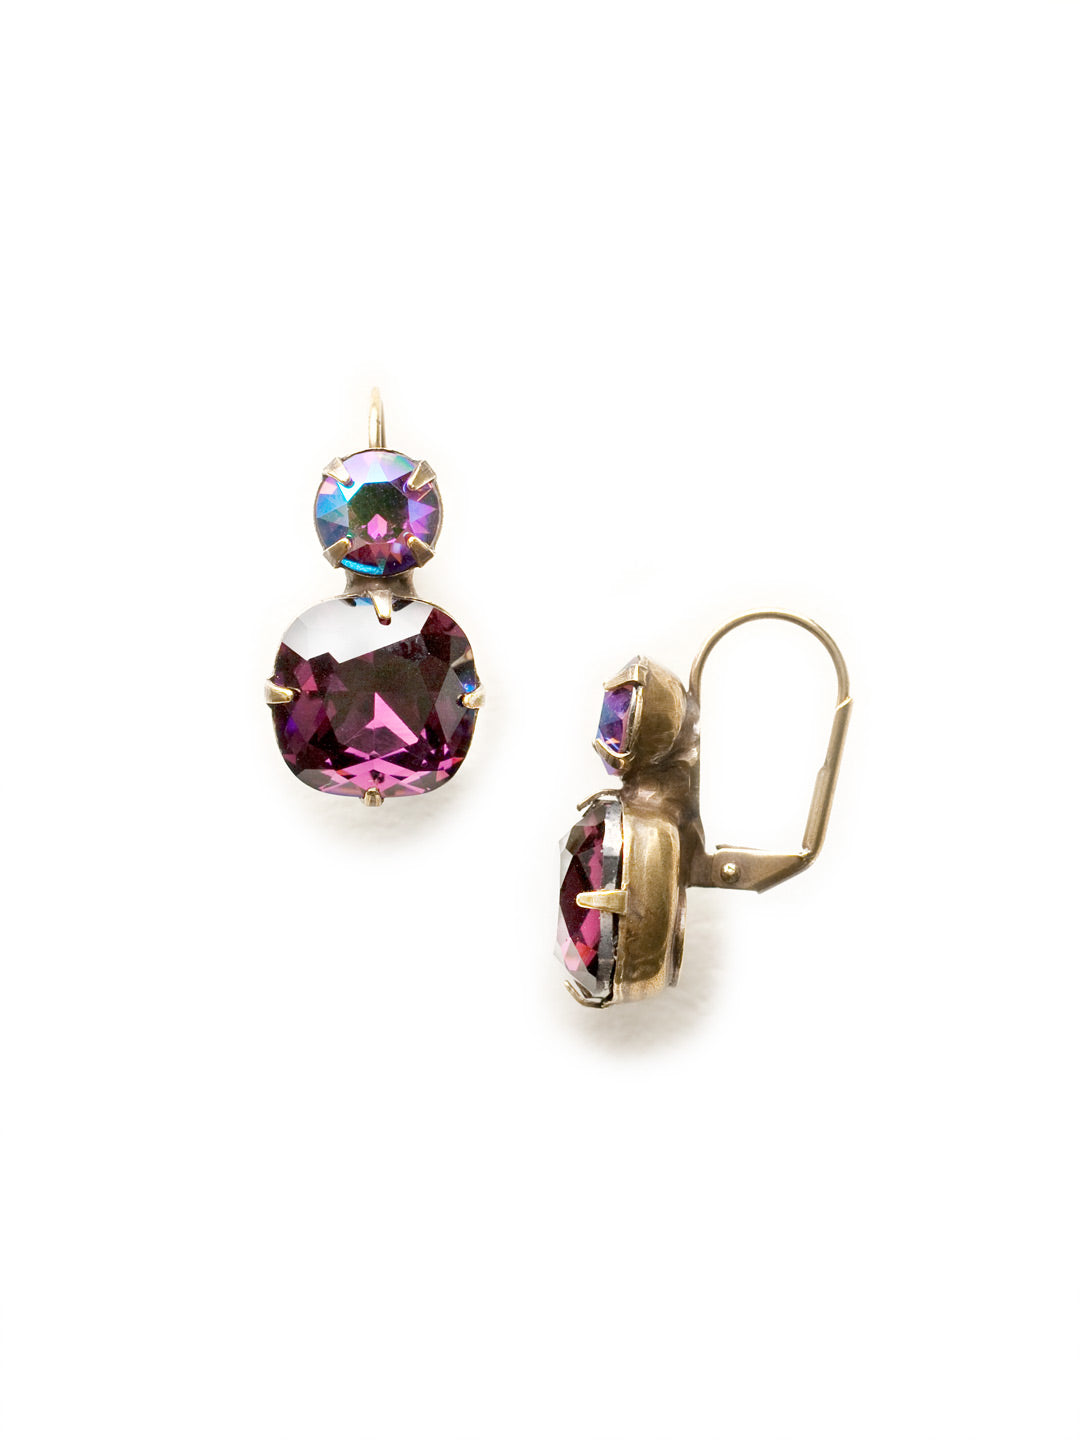 On The Edge Dangle Earrings - ECL4AGAM